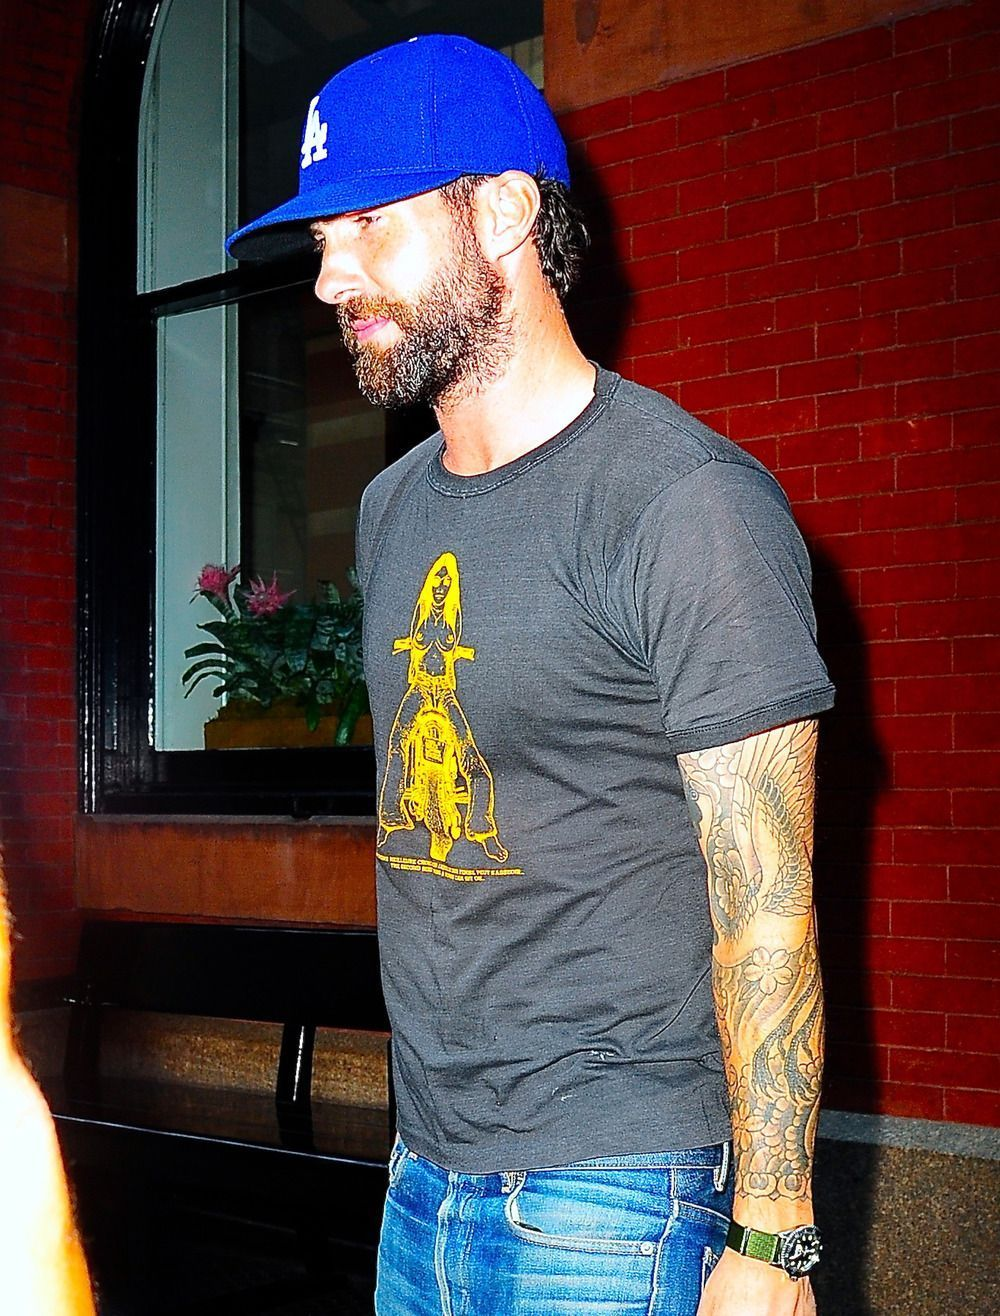 Adam Levine Spotted in New York City With Intense Facial Hair Following Marriage... #Adam #city #facial #hair #intense #Levine #Marriage